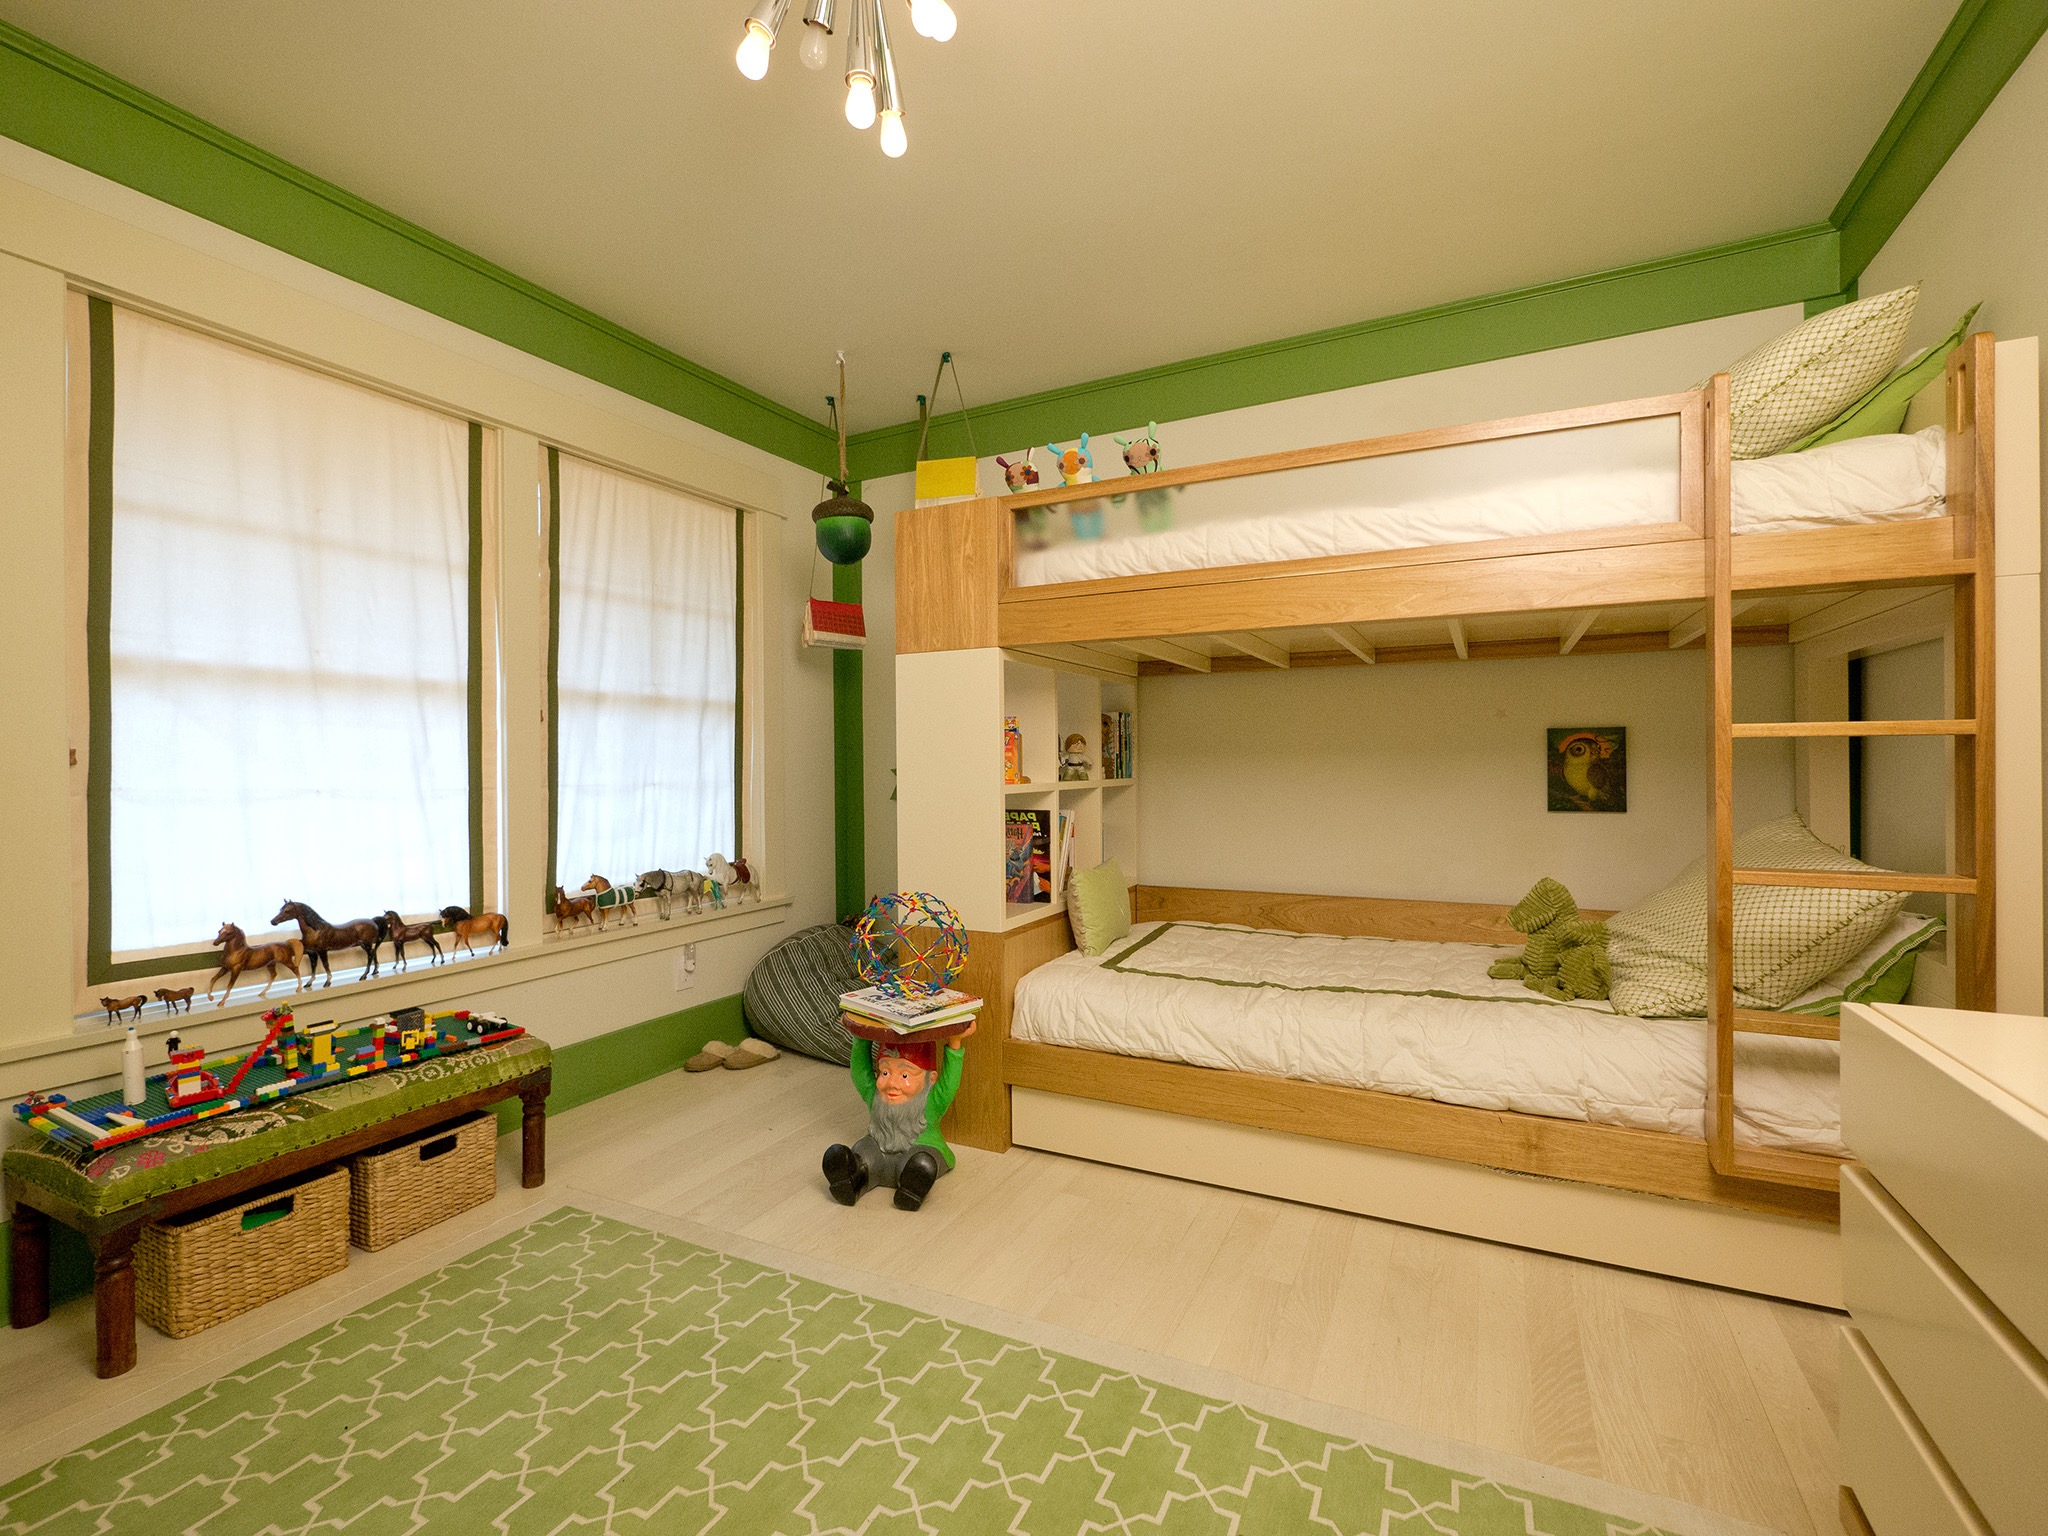 Minimalist Kids Bedroom For Boys With Bedroom With Bunk Bed (View 24 of 35)